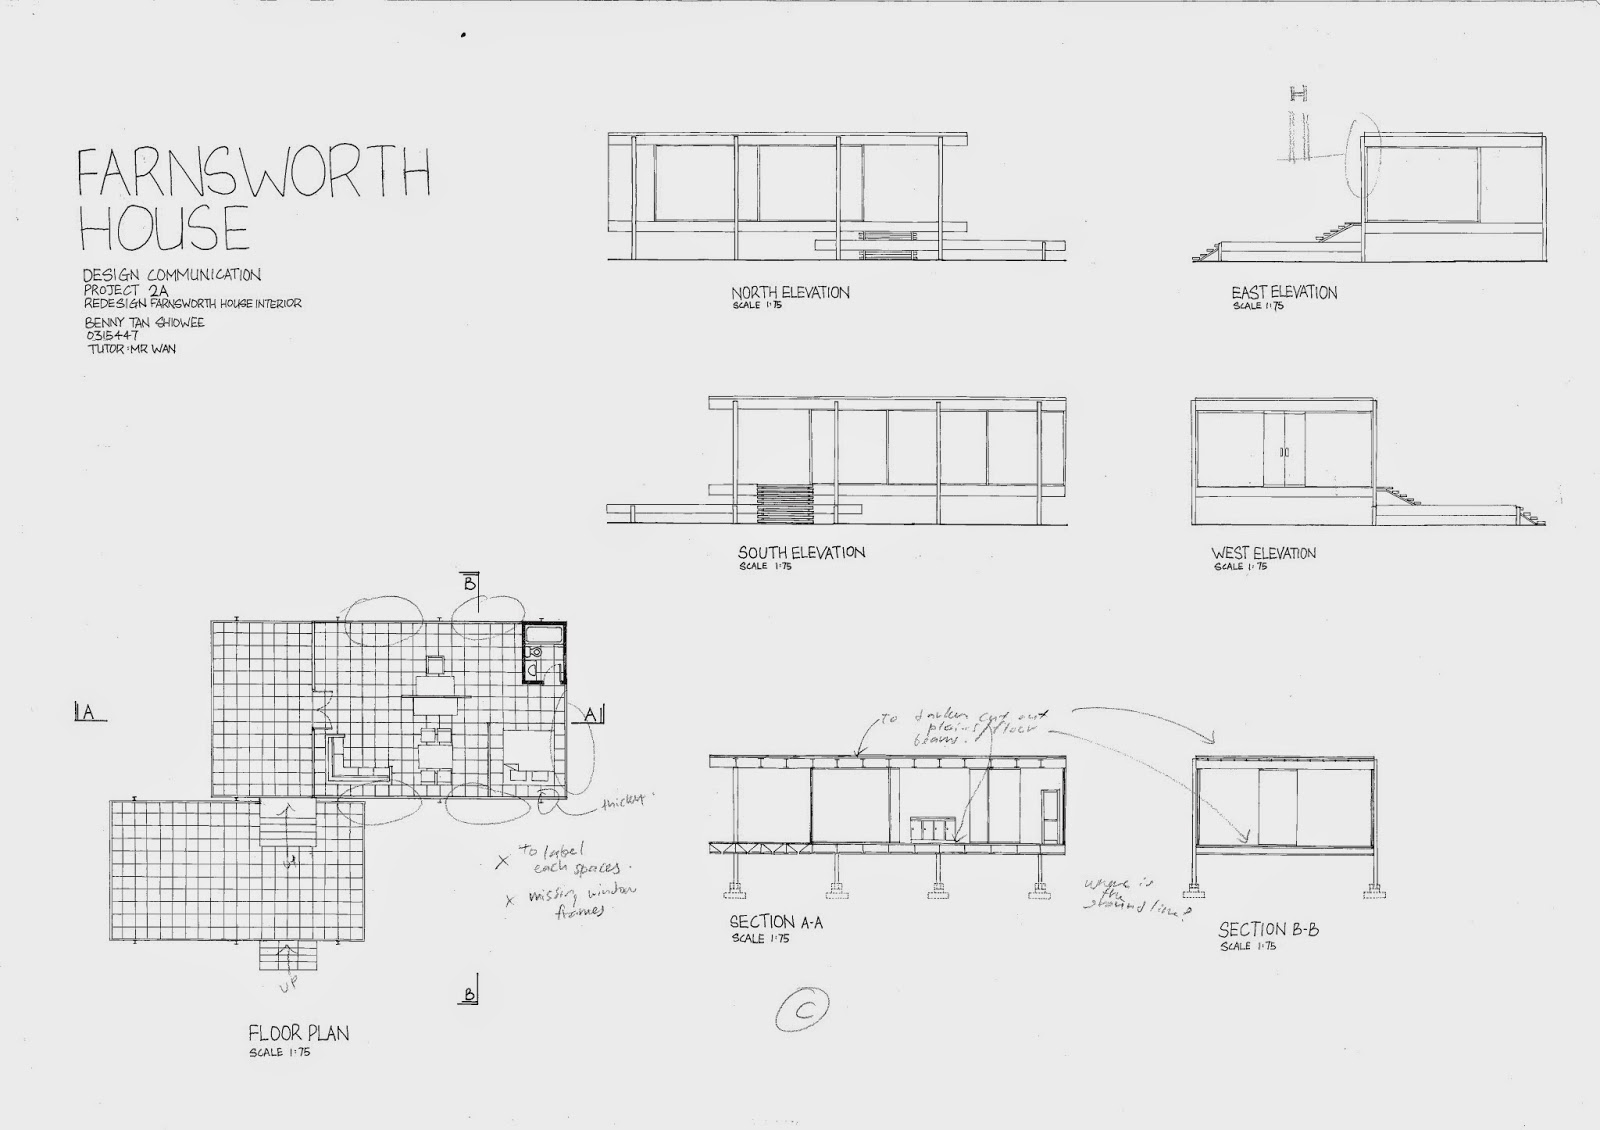 Design communication project 02 bennyts e portfolio for Farnsworth house floor plan